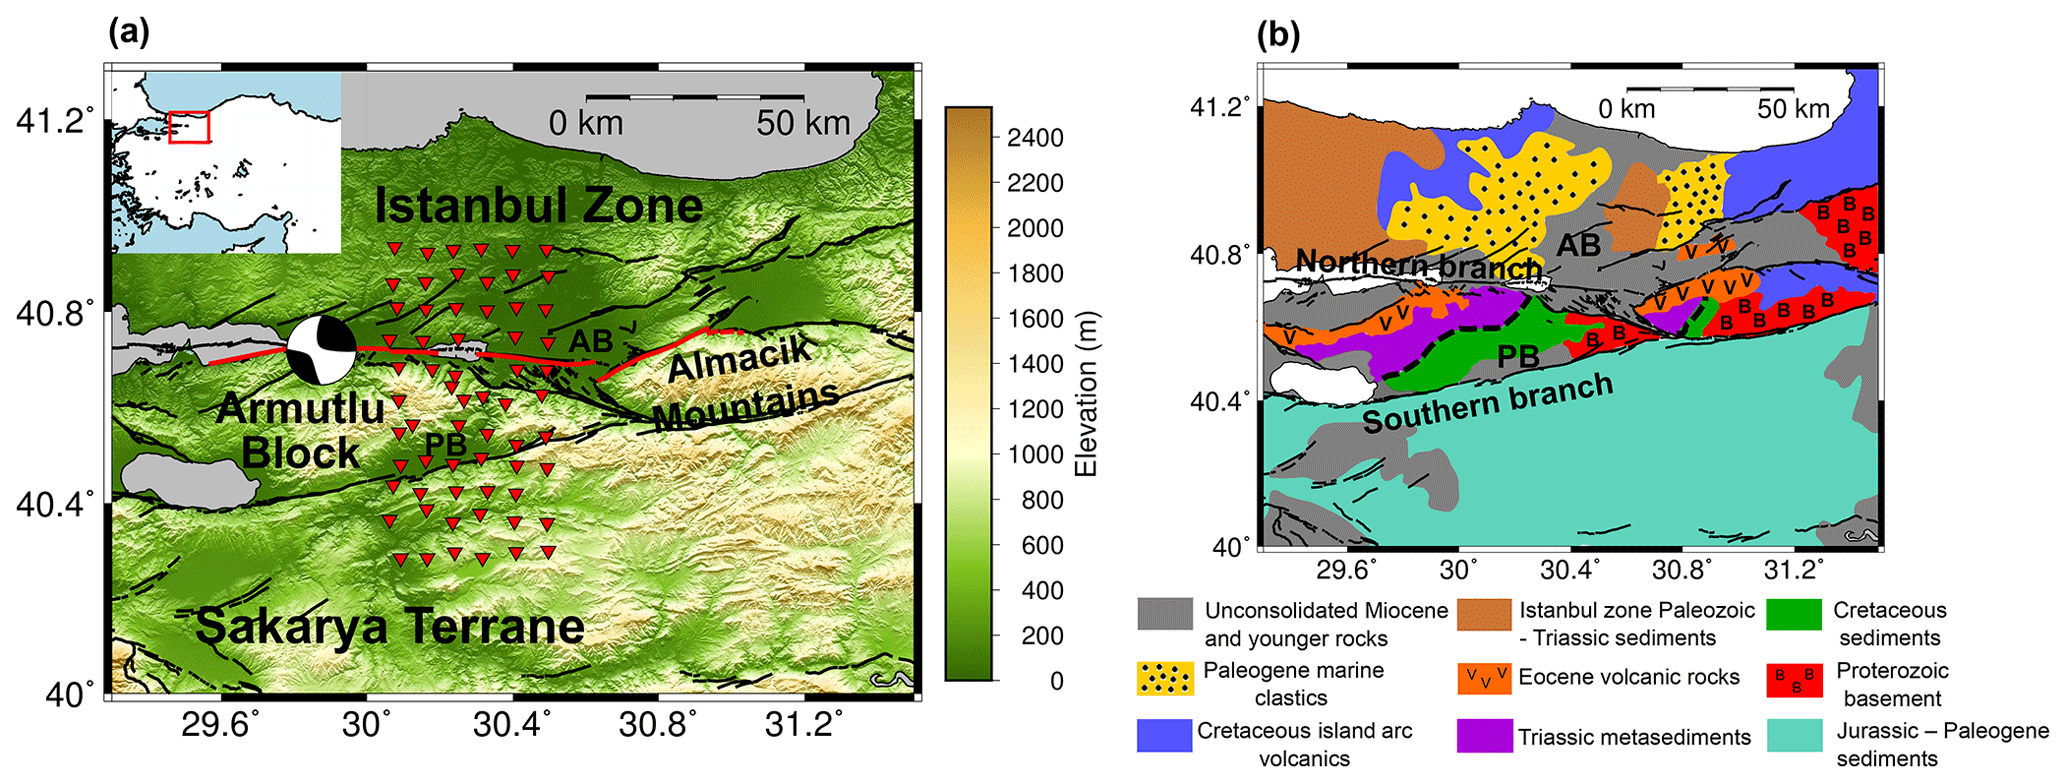 SE - Near-surface structure of the North Anatolian Fault